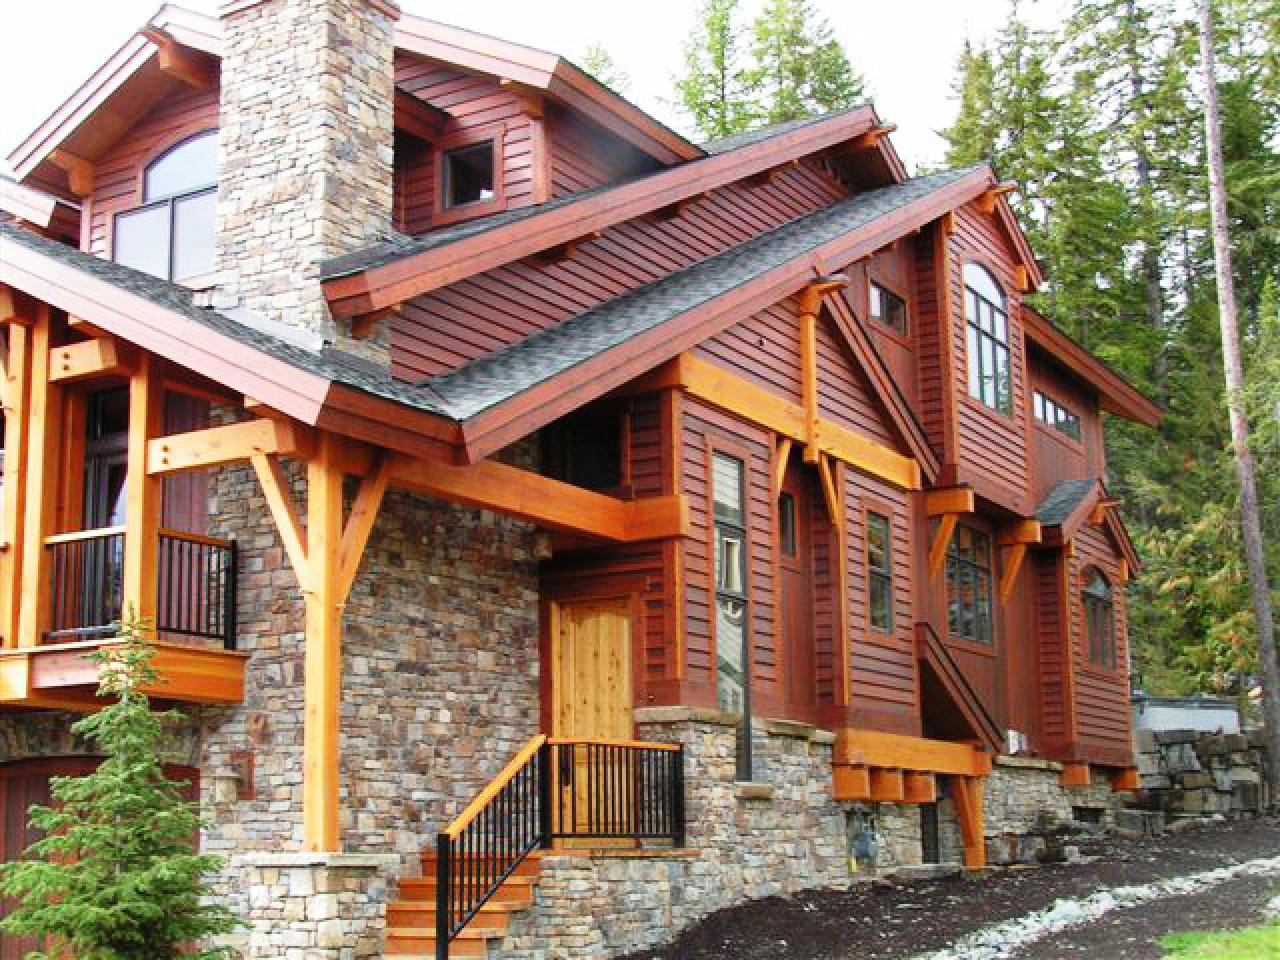 House Siding Contractors Near Me - Checklist And Free ...